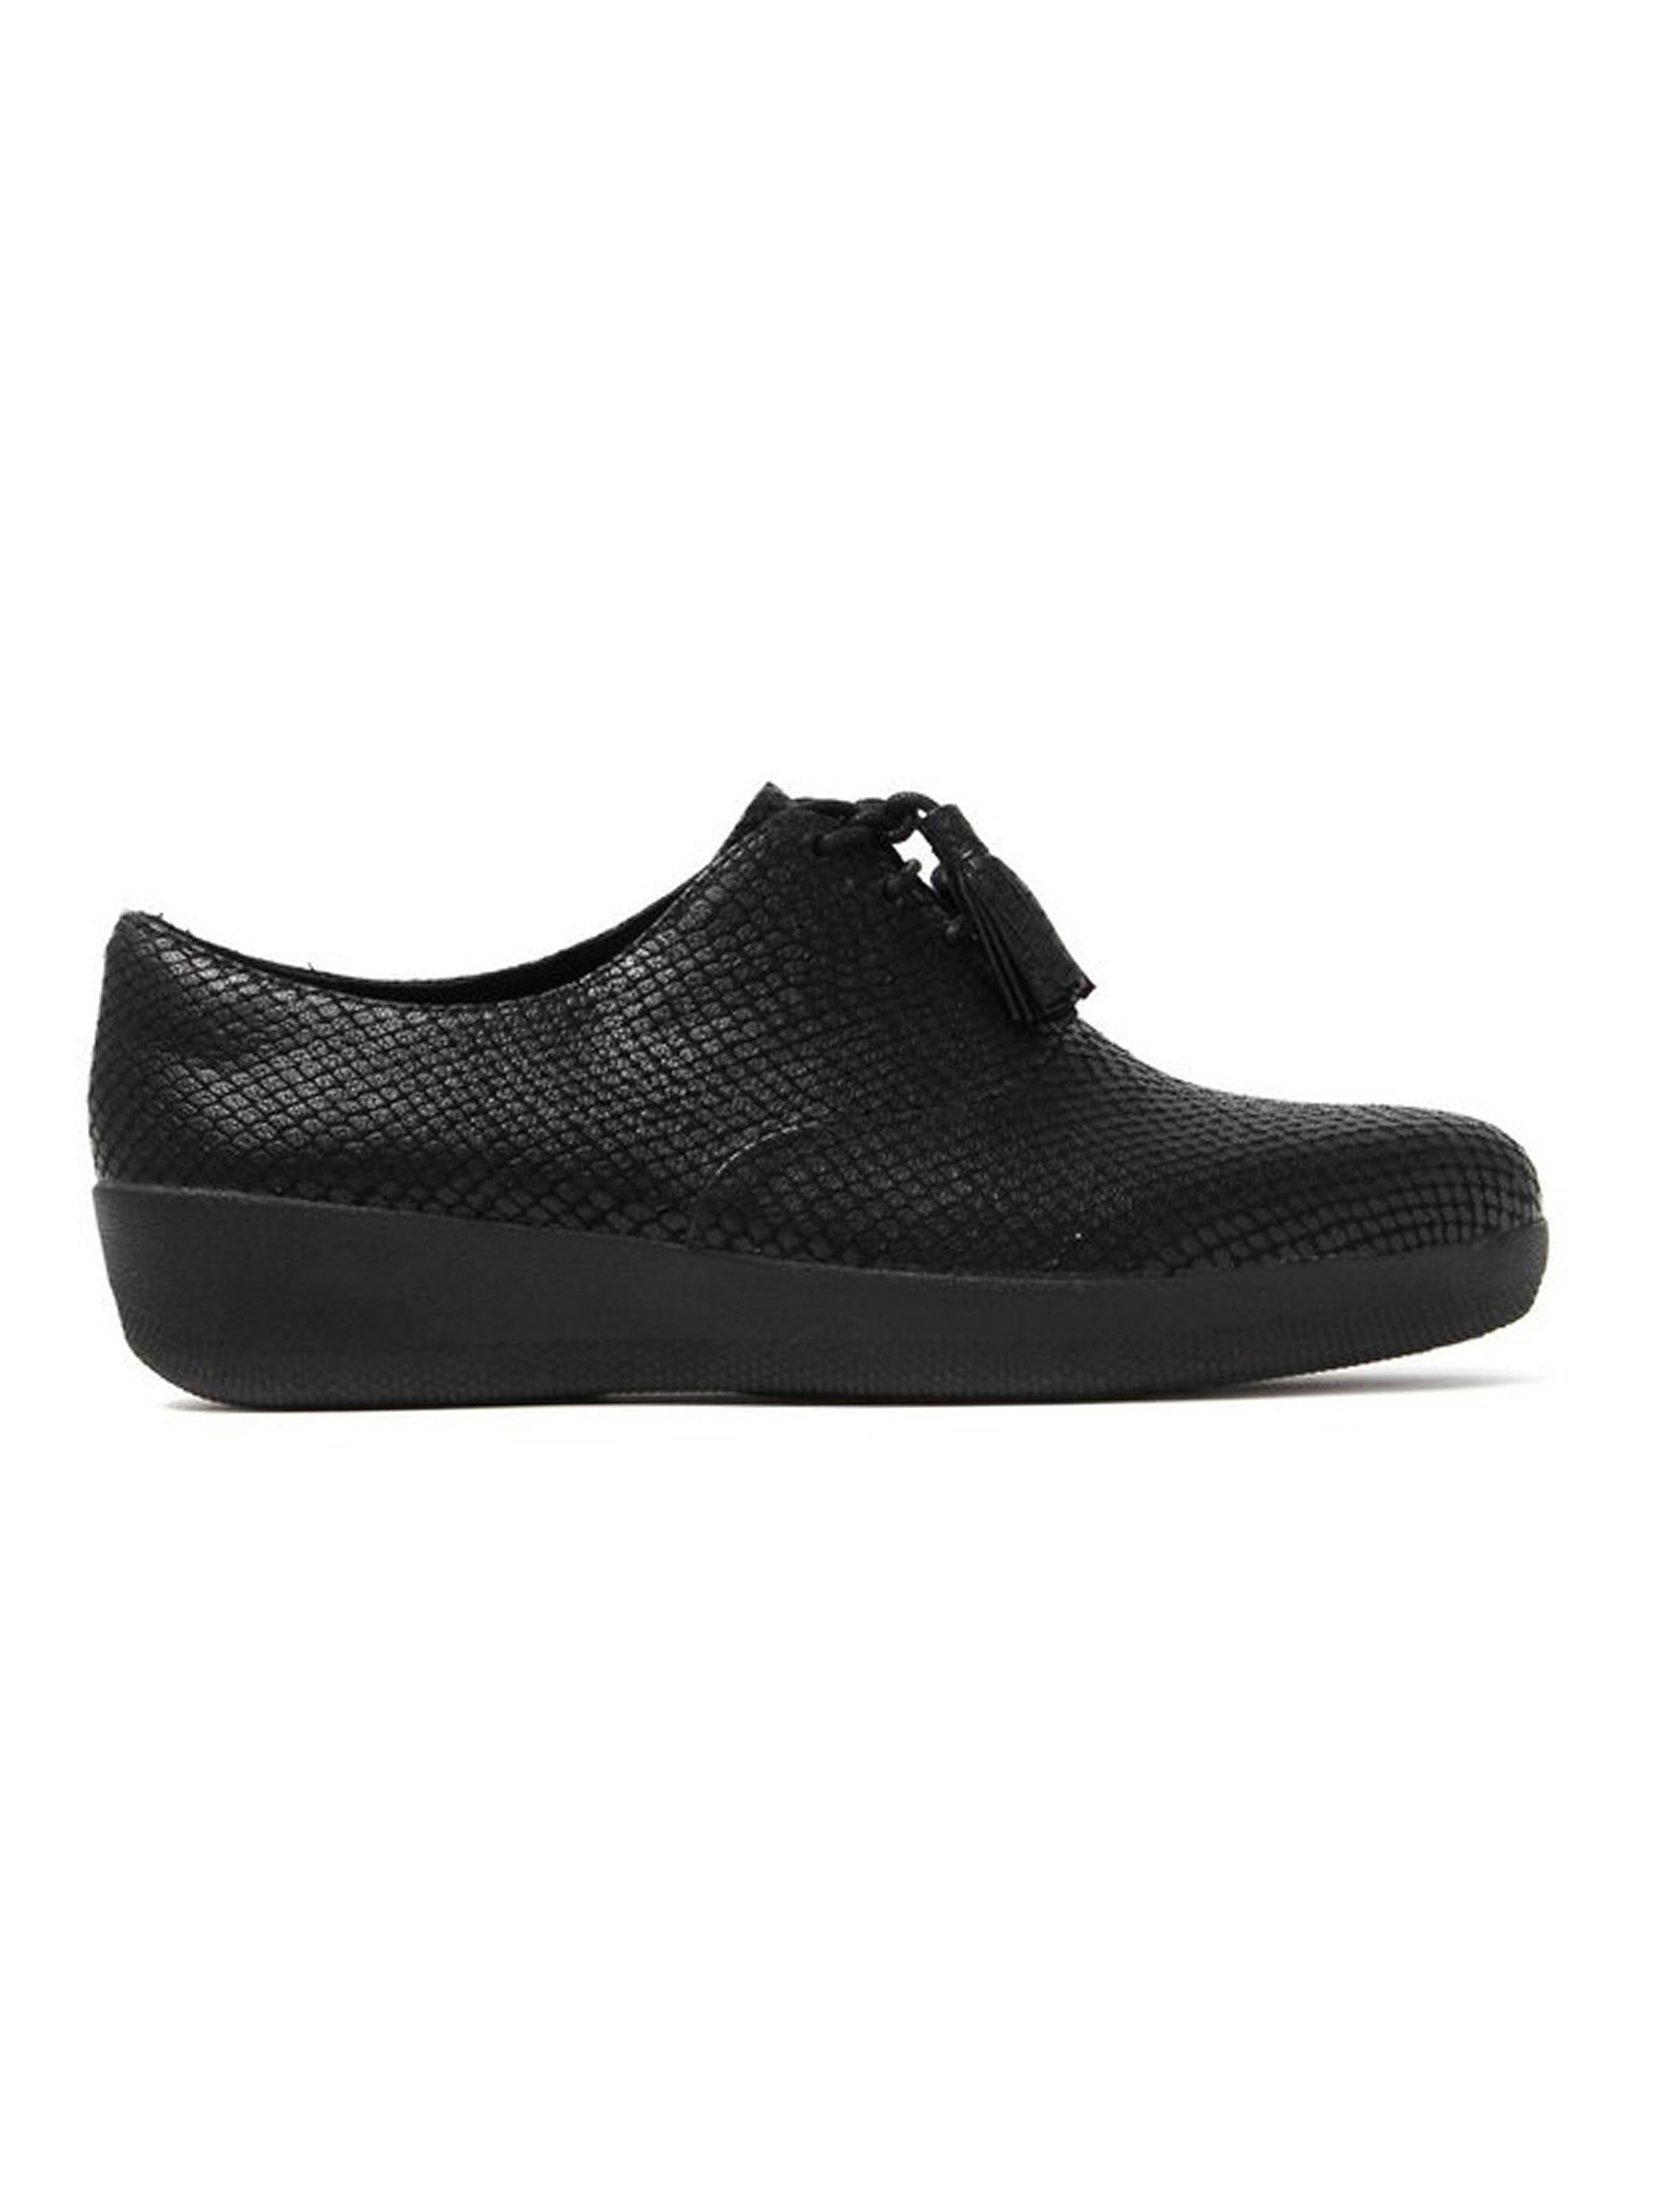 FitFlop Women's Classic Tassel SuperOxford Shoes - Black Snake